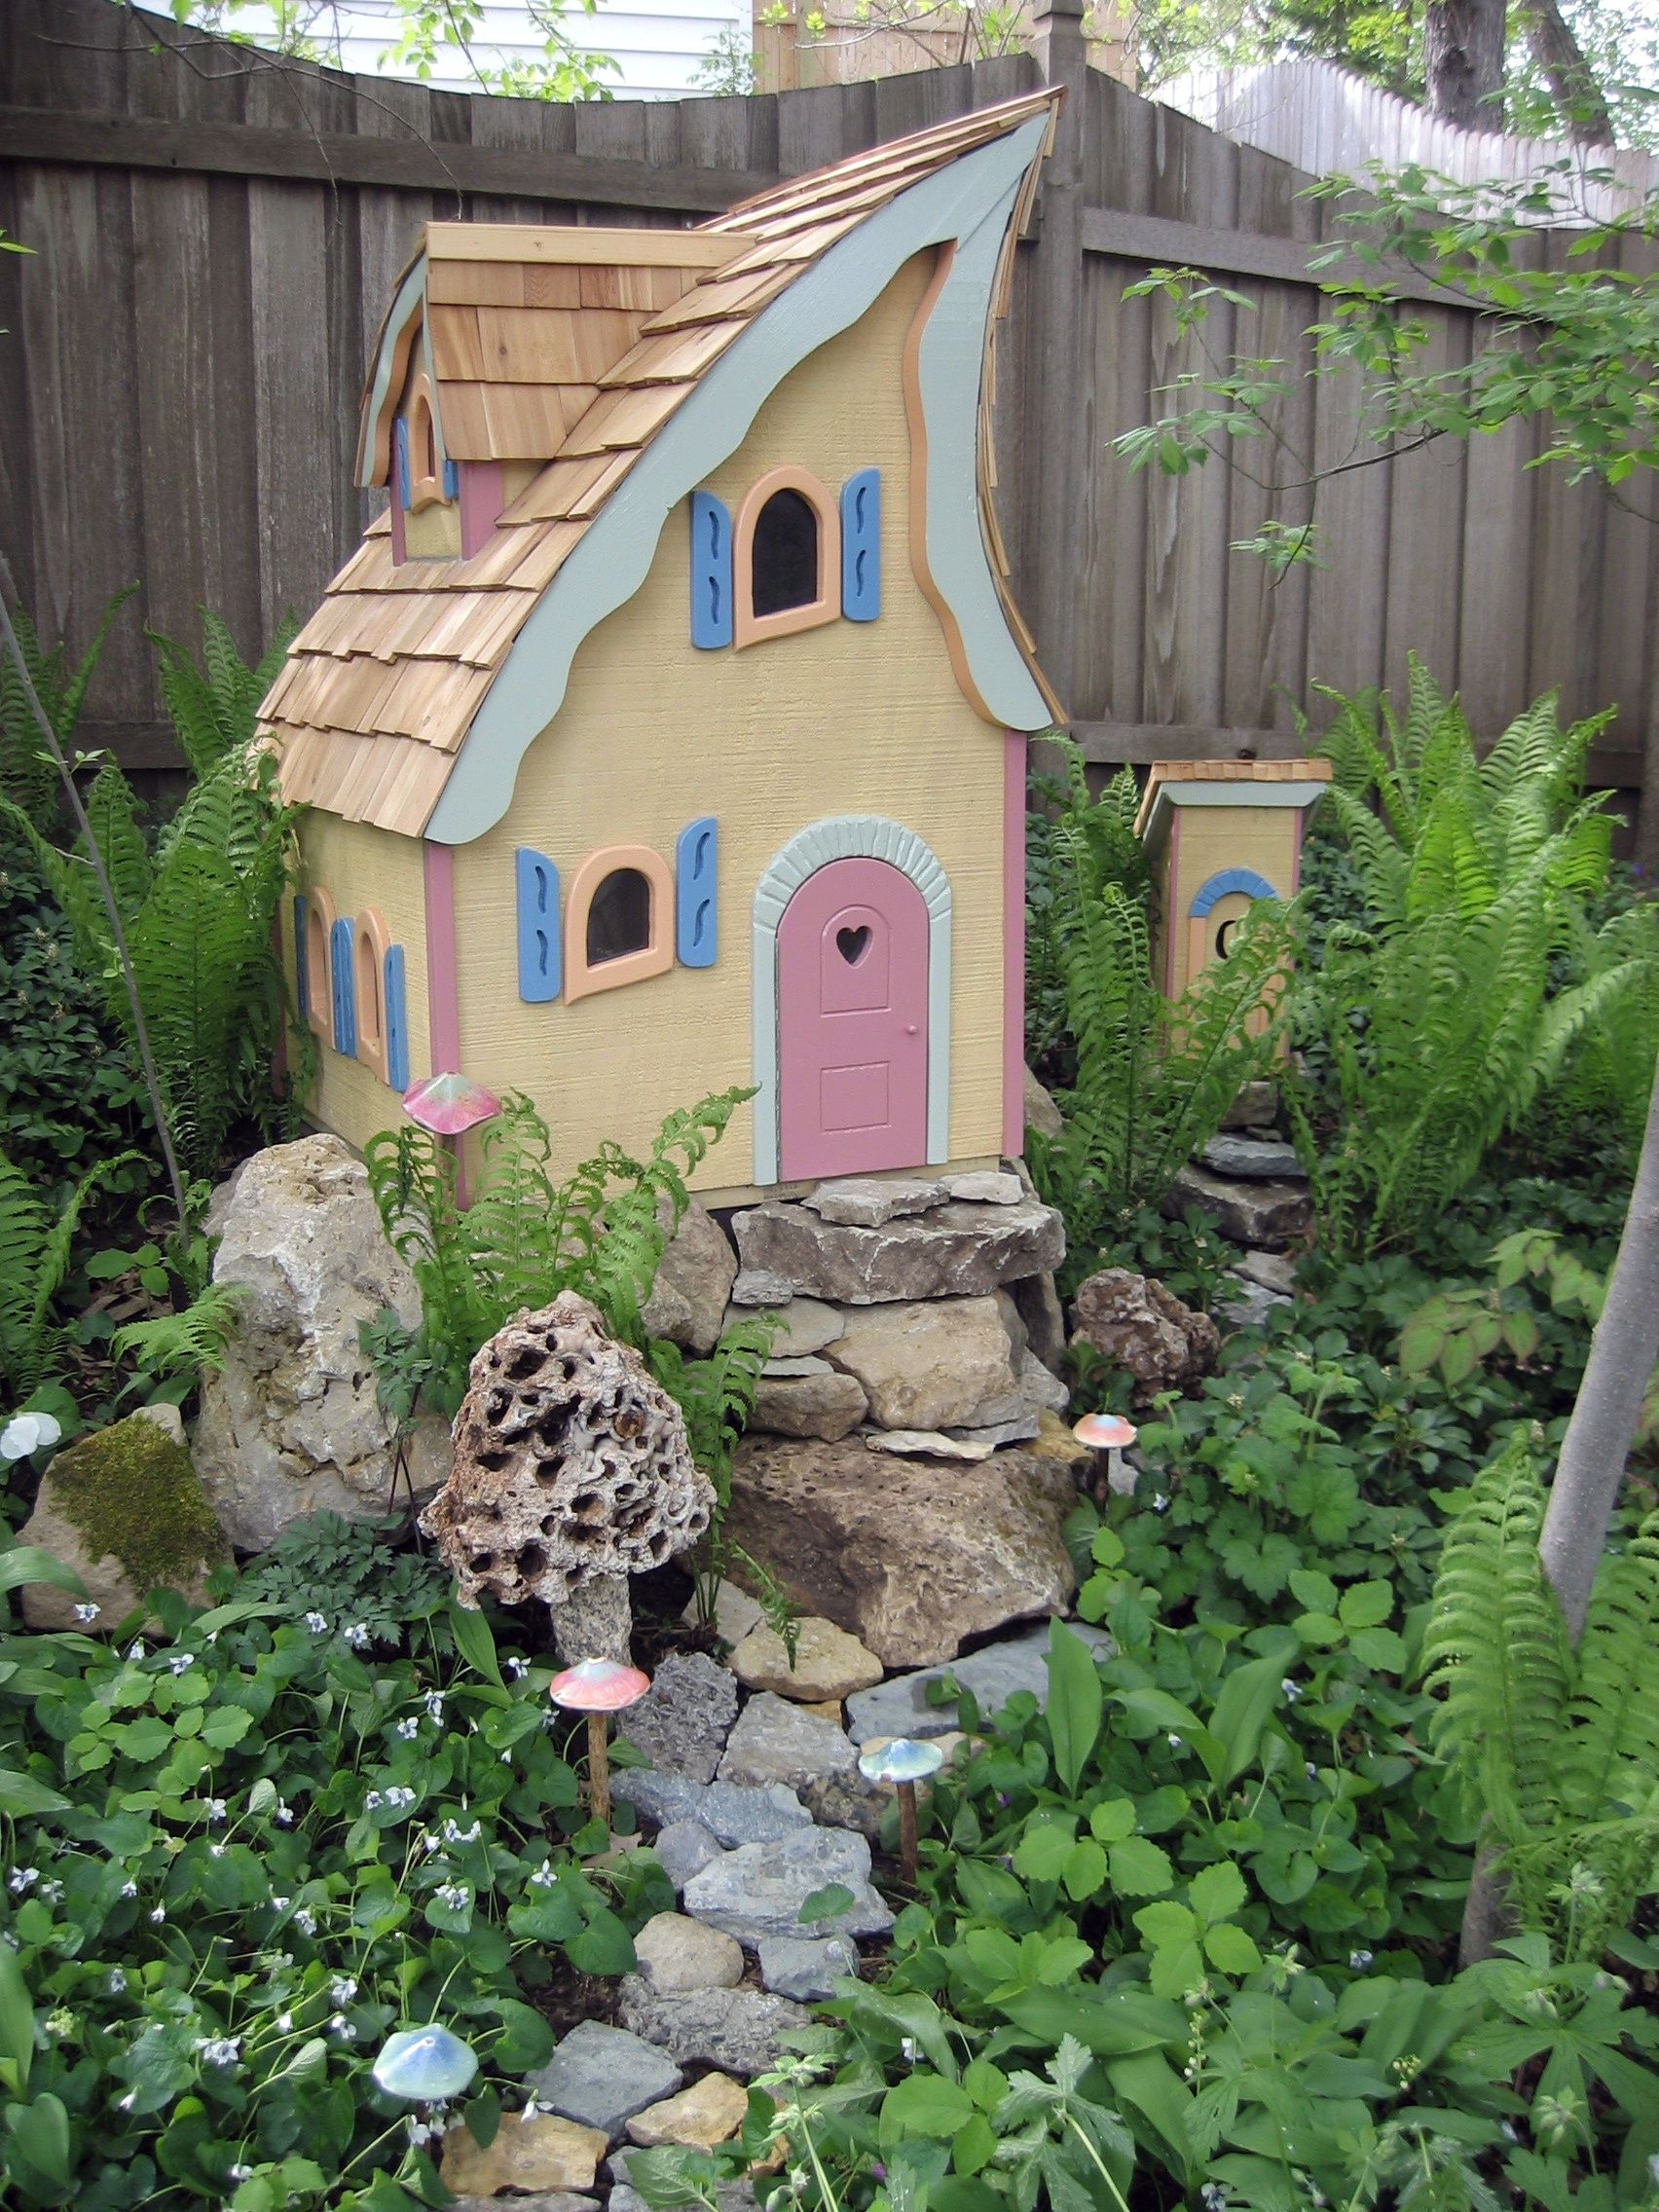 Find This Pin And More On ITTY BITTY HOUSES By CcConnieClark. From Pahls: Fairy  Garden Cottage